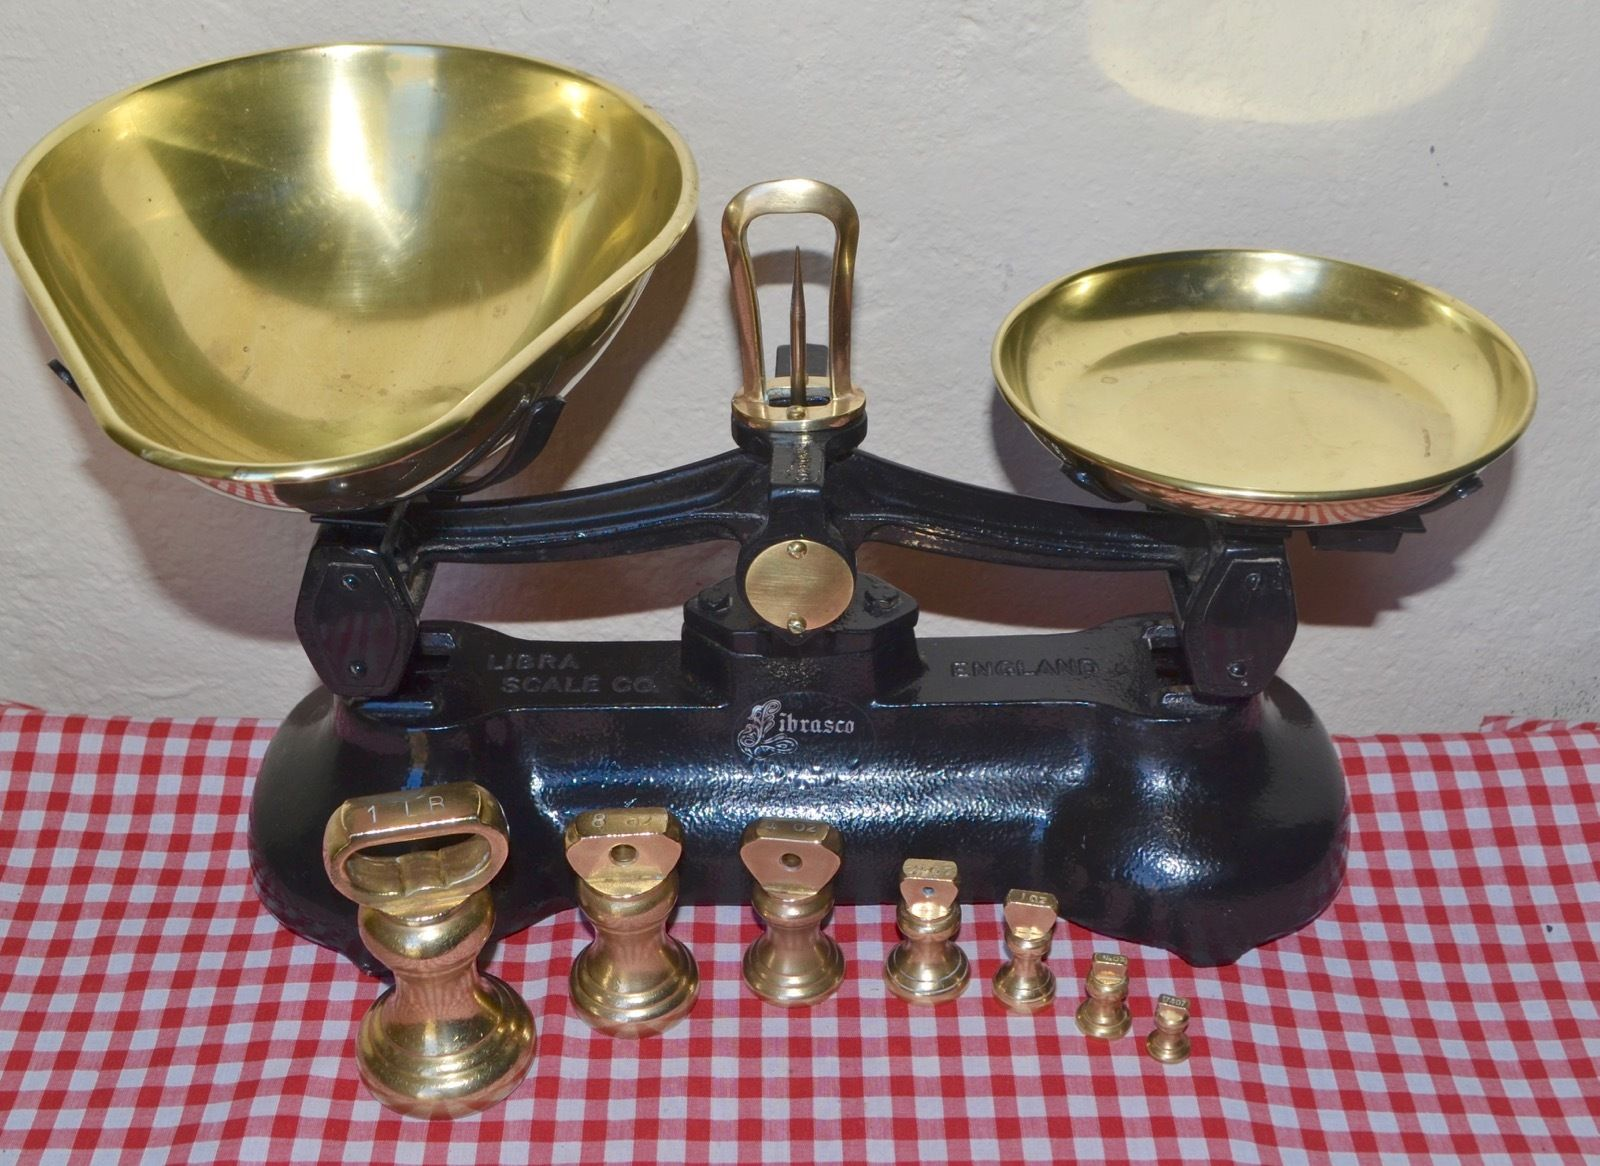 Vintage English Kitchen Scales Librasco 7 Brass Bell Weights